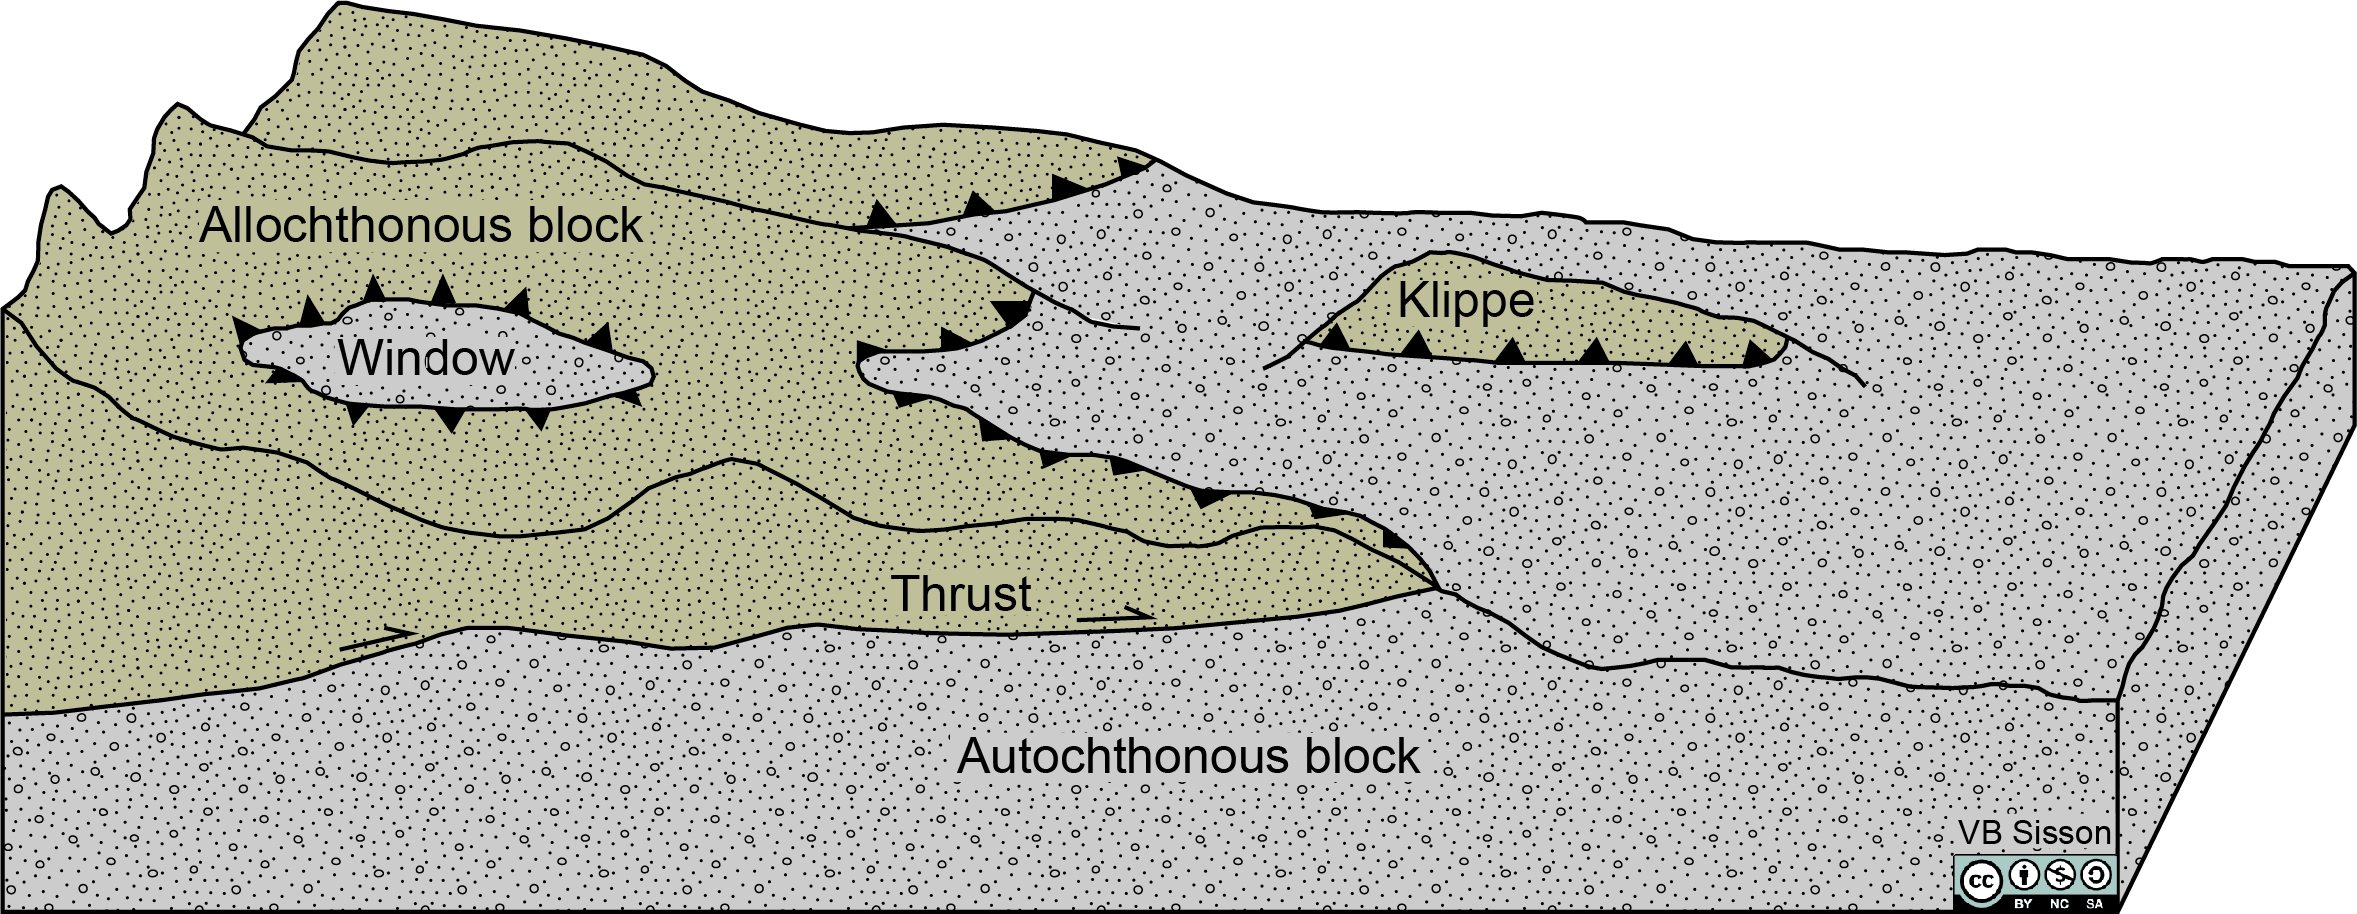 Thrust fault forming a klippe or window